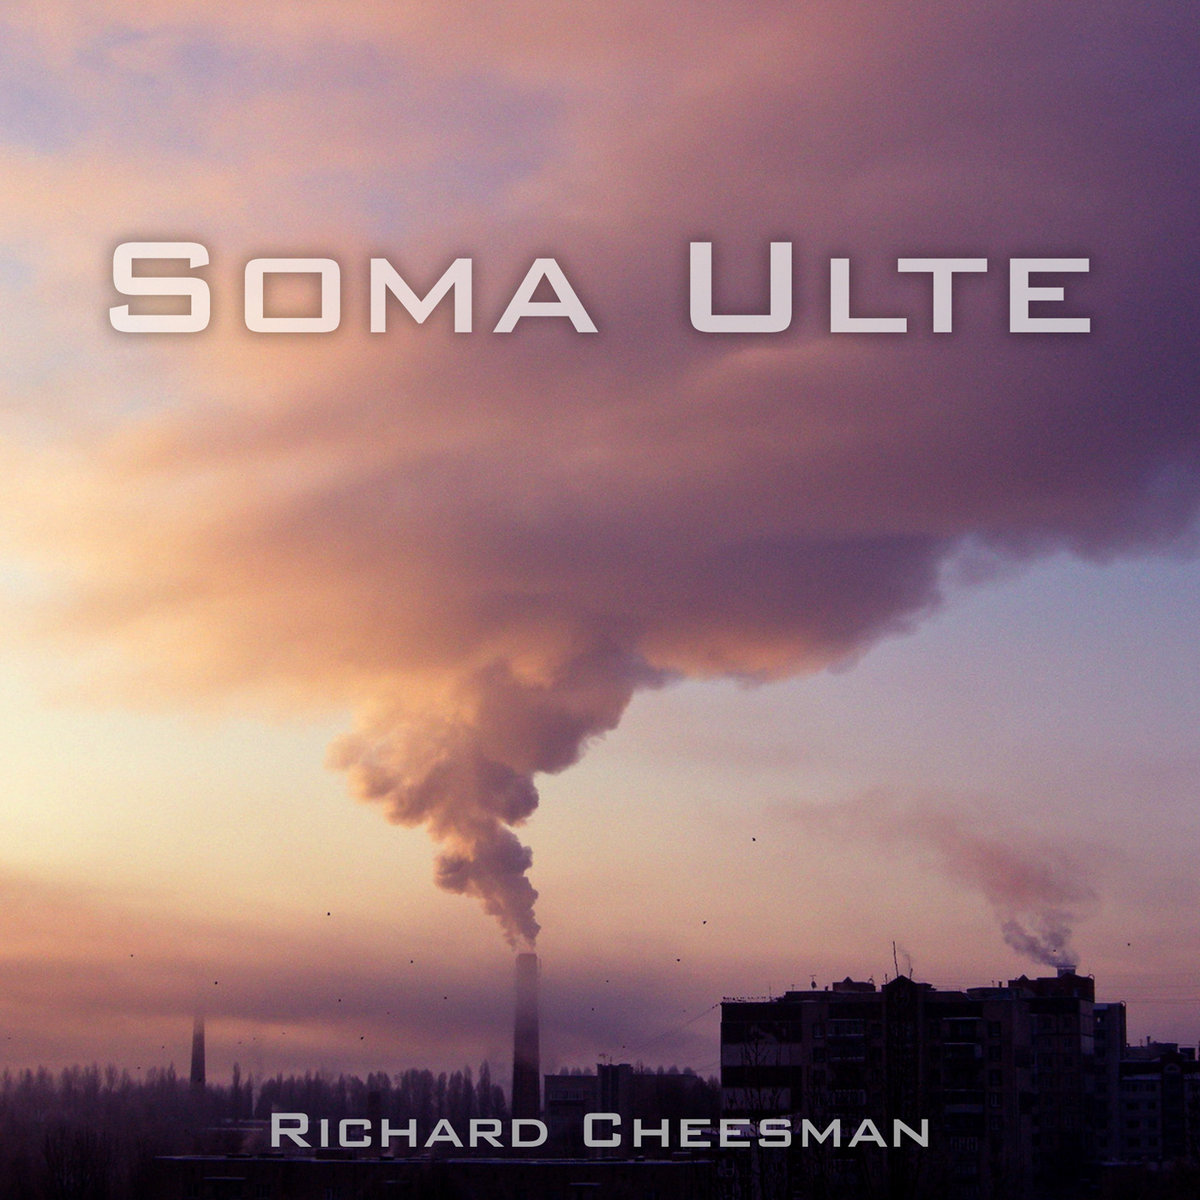 soma ulte i richard cheesman